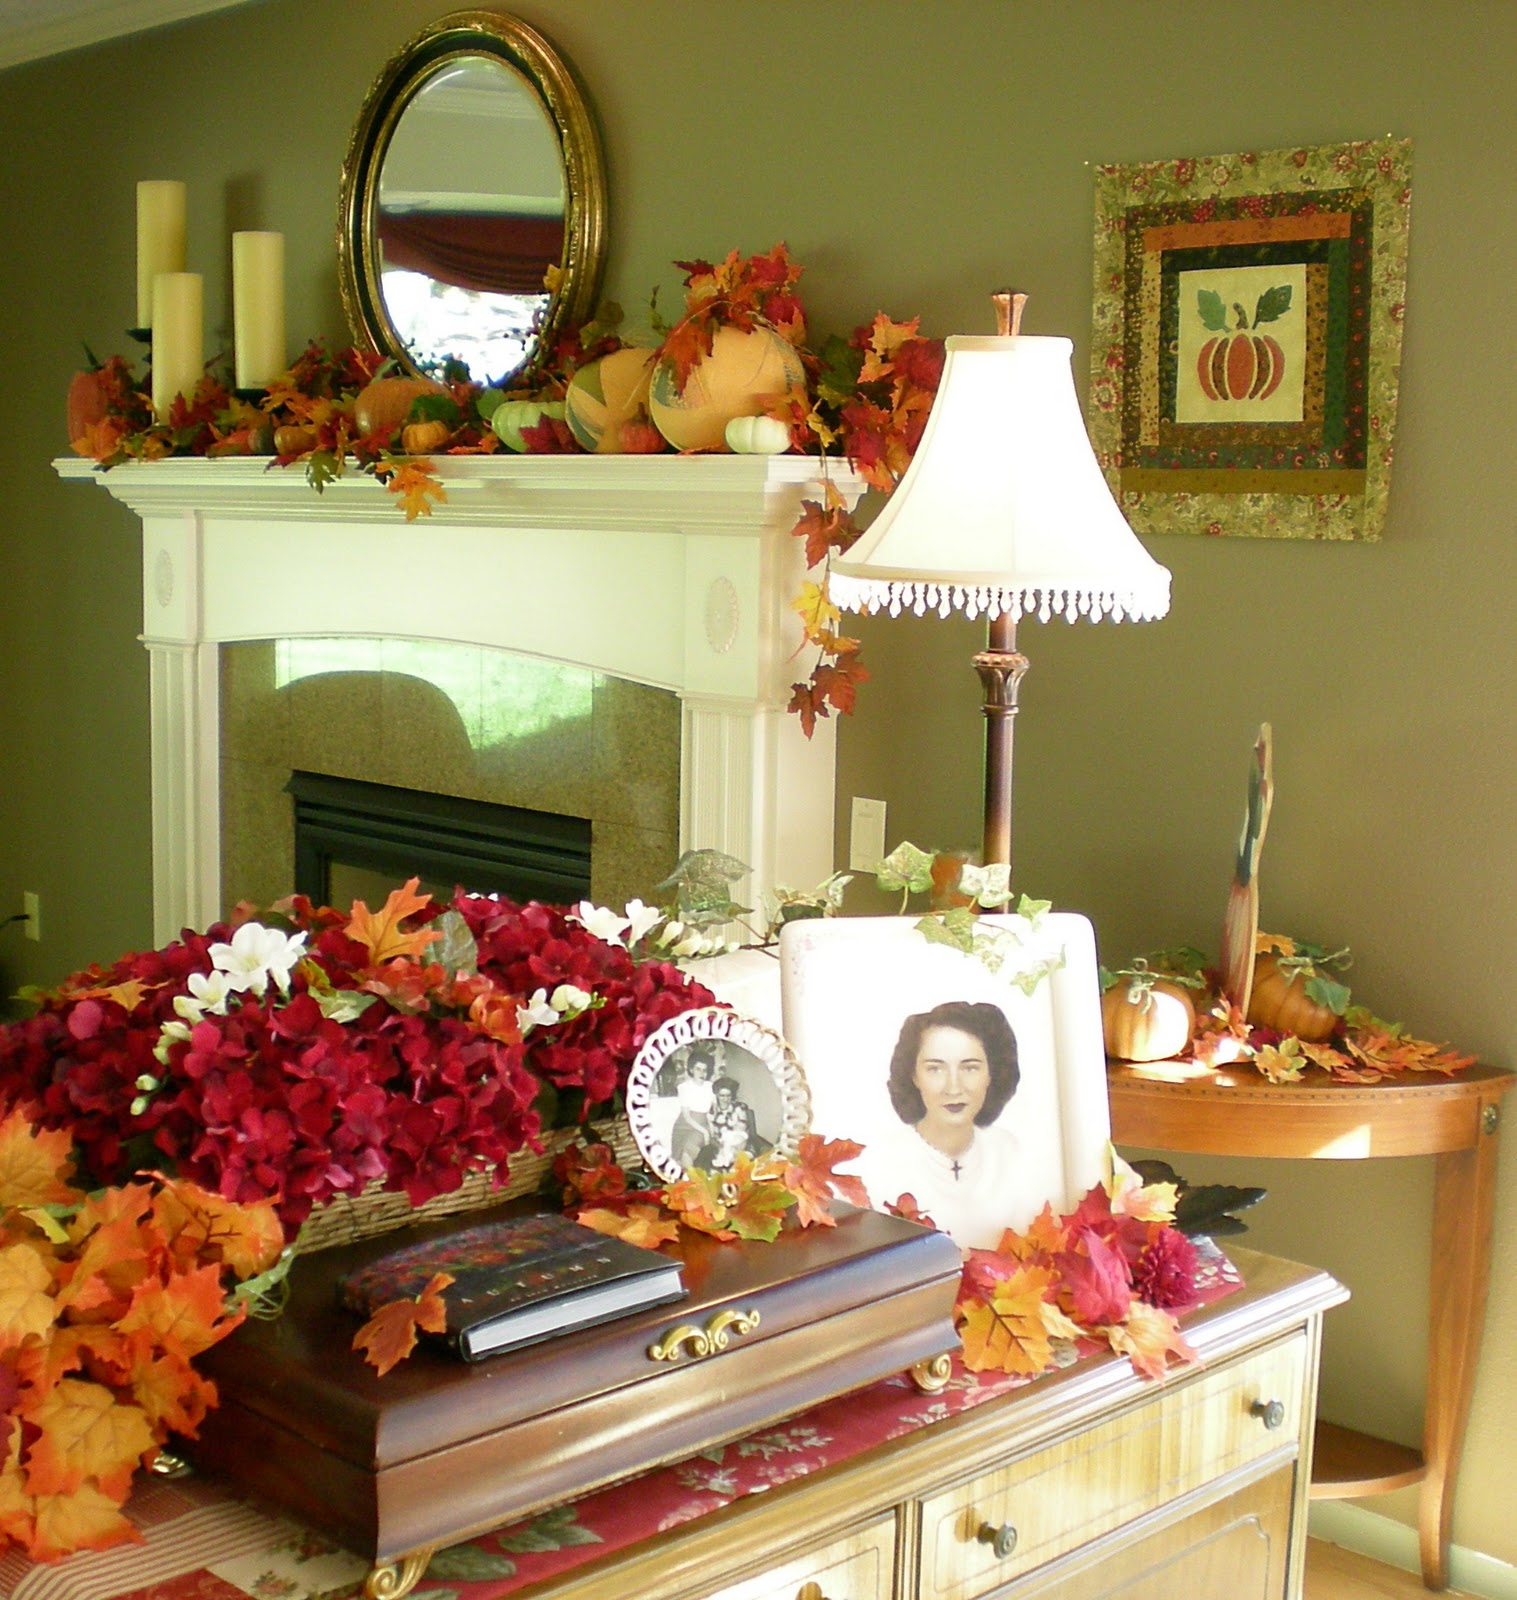 Fall Decorating Ideas Pictures Photos And Images For Facebook